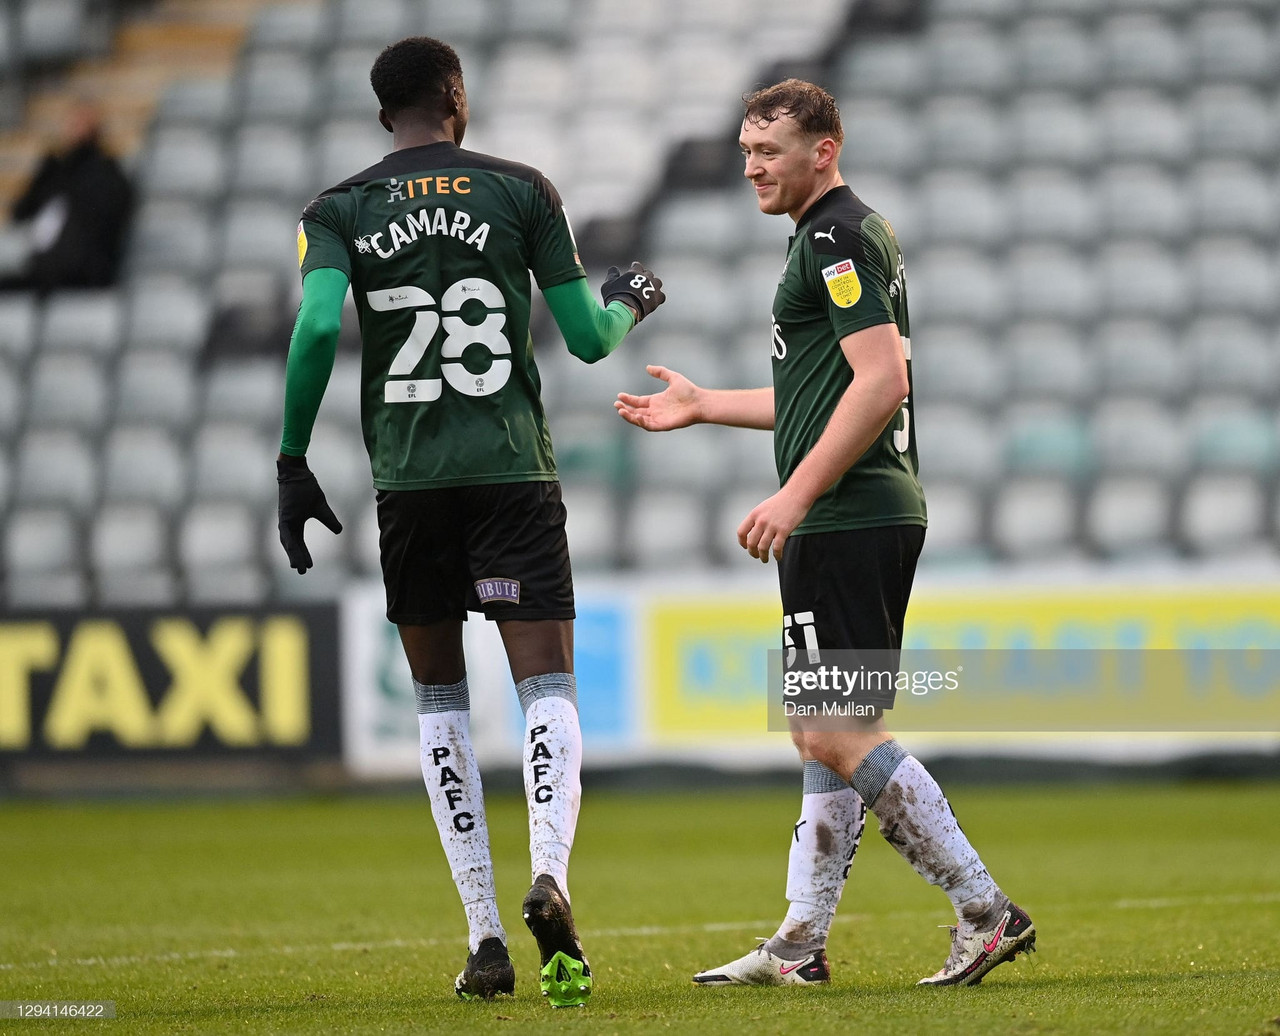 Plymouth Argyle 2-2 Accrington Stanley: Pilgrims pull it back